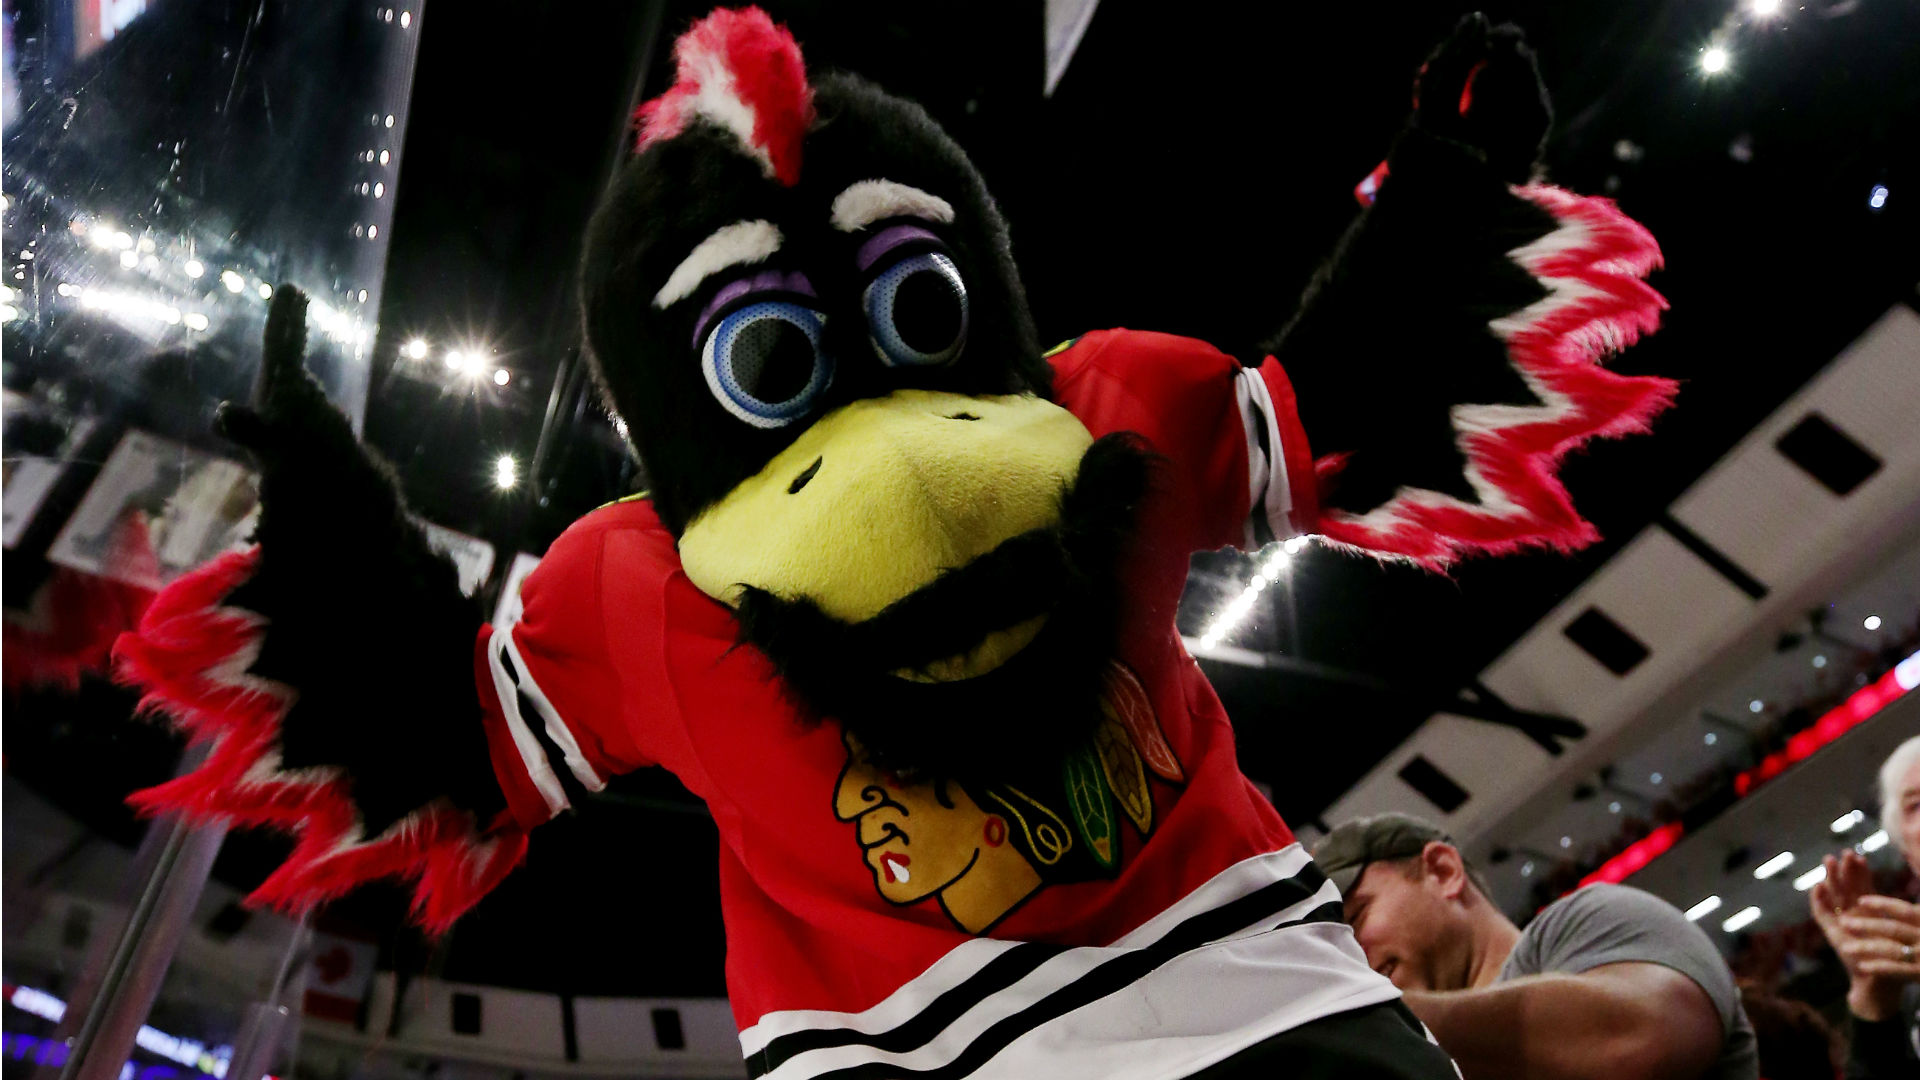 NHL's Blackhawks probe mascot's fan fight